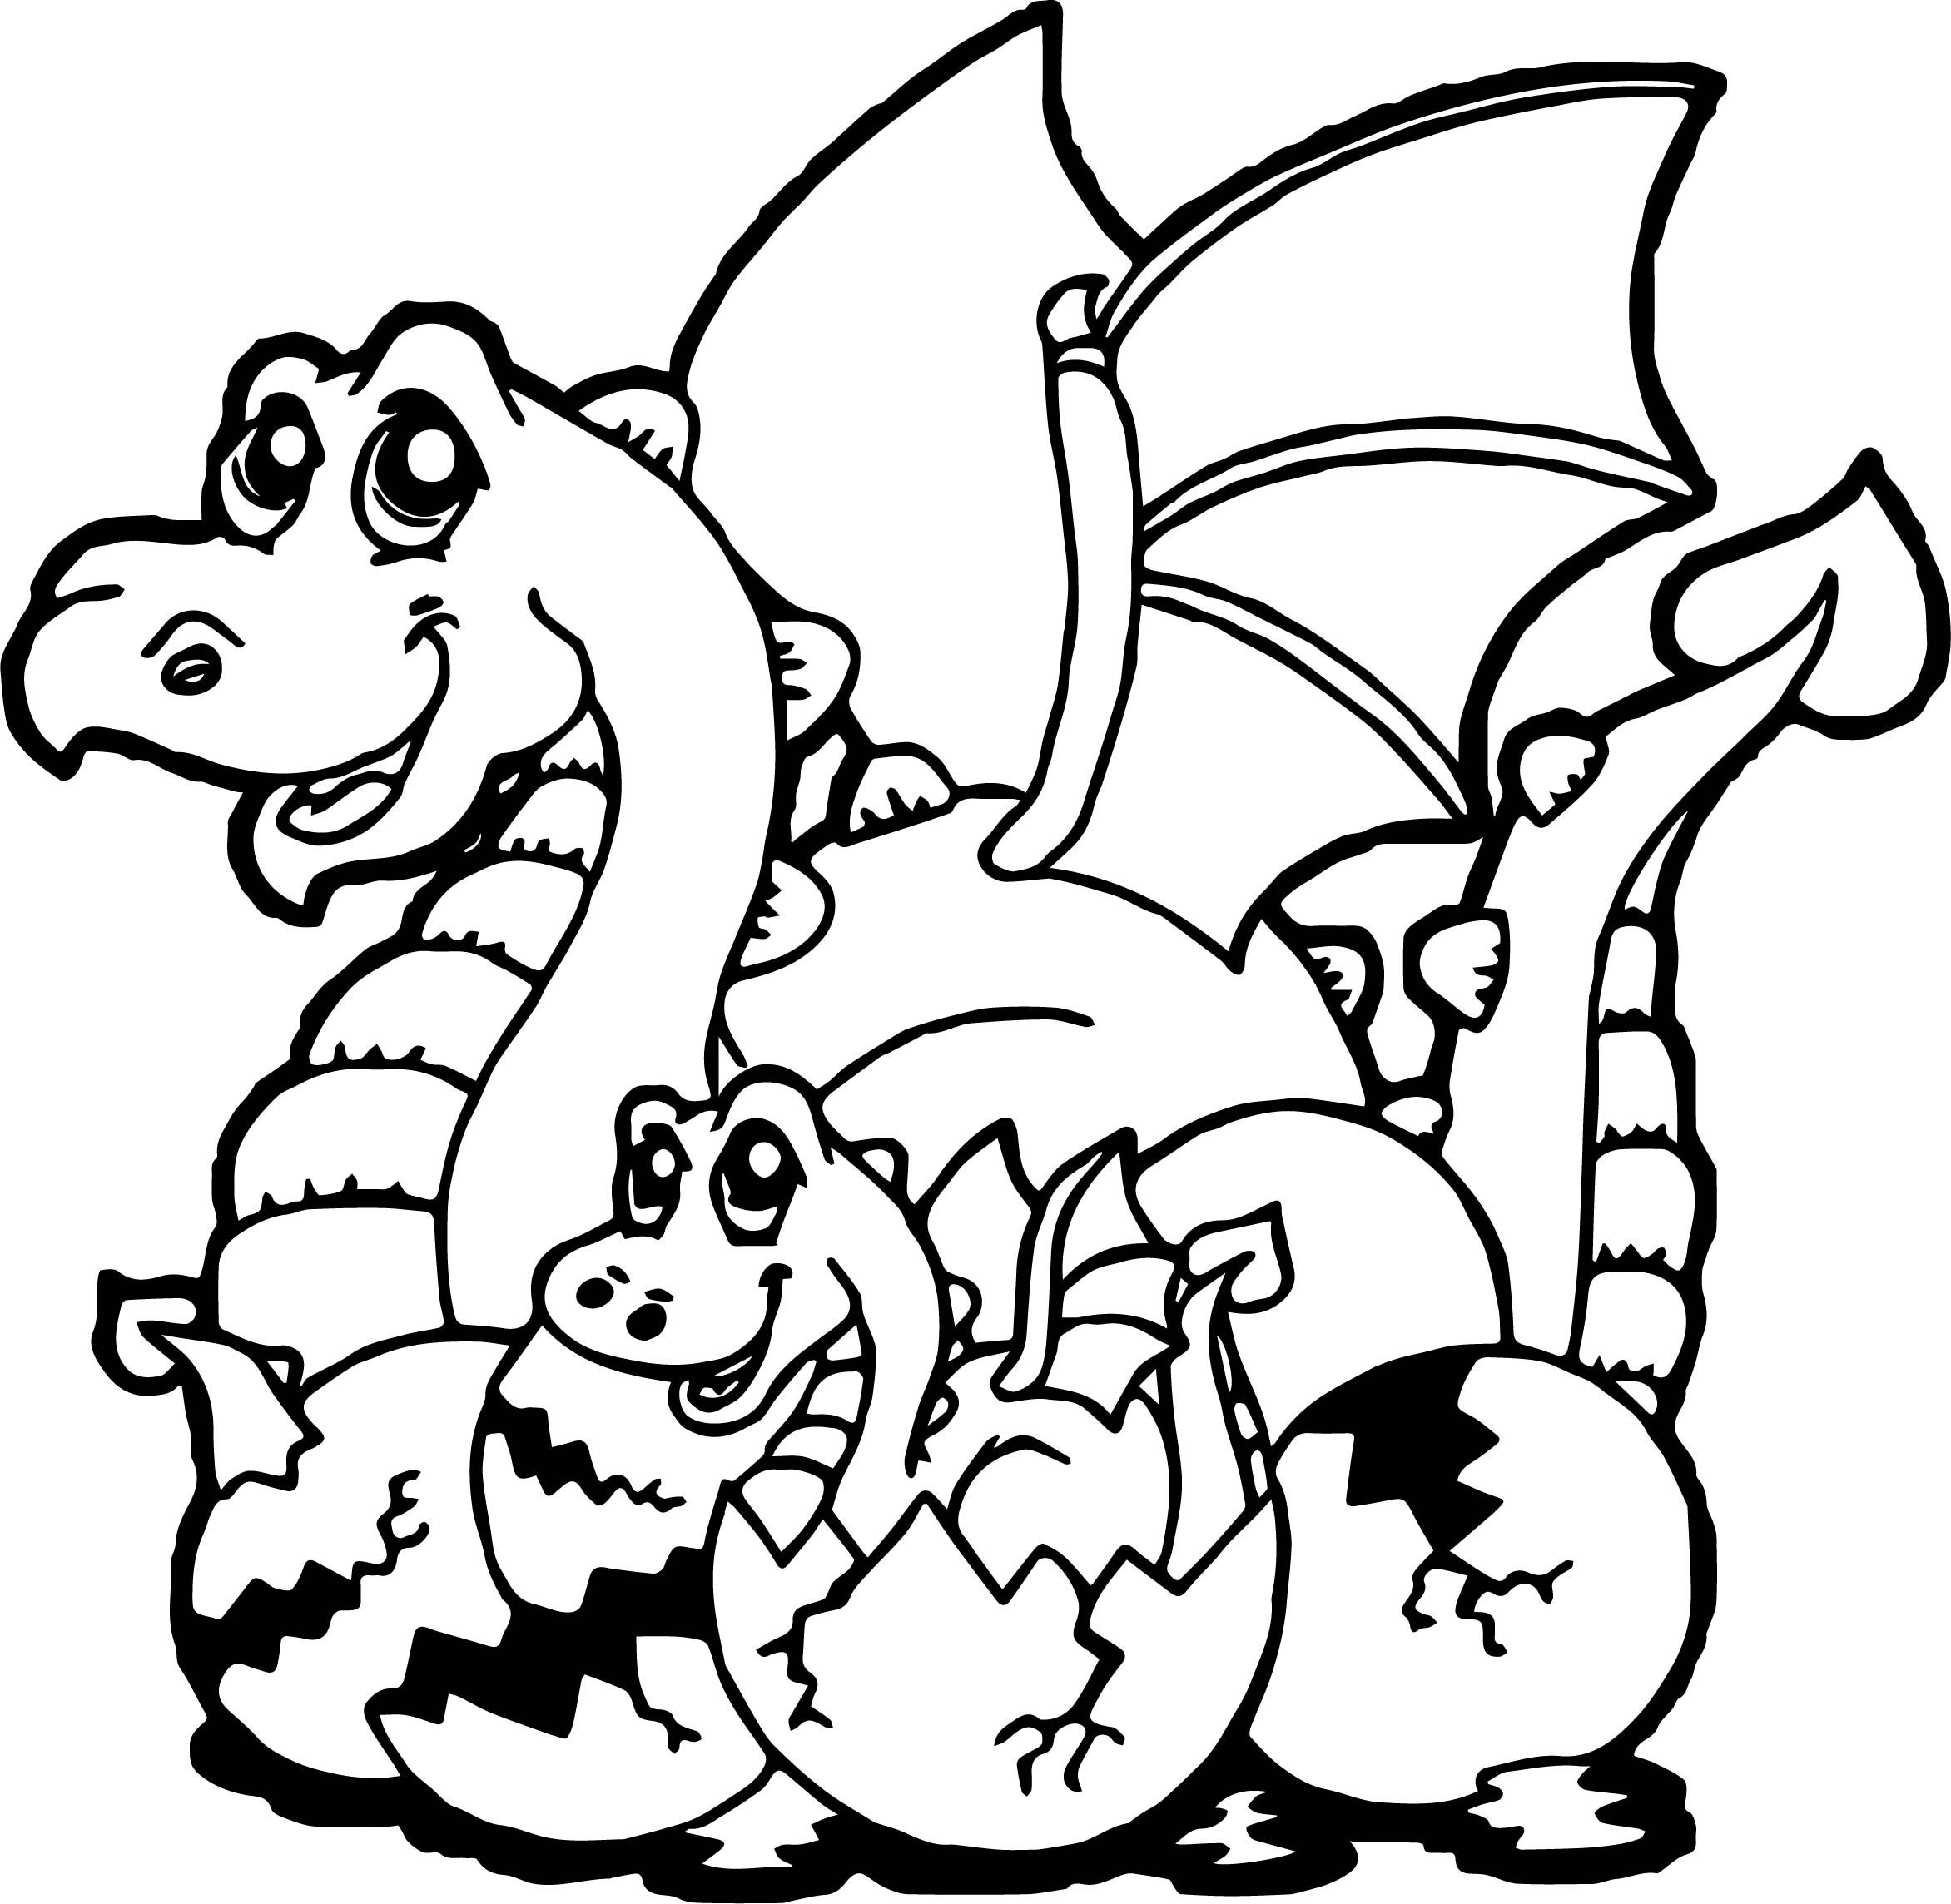 cool Baby Dragon Cartoon Coloring Page | Cartoon coloring ...